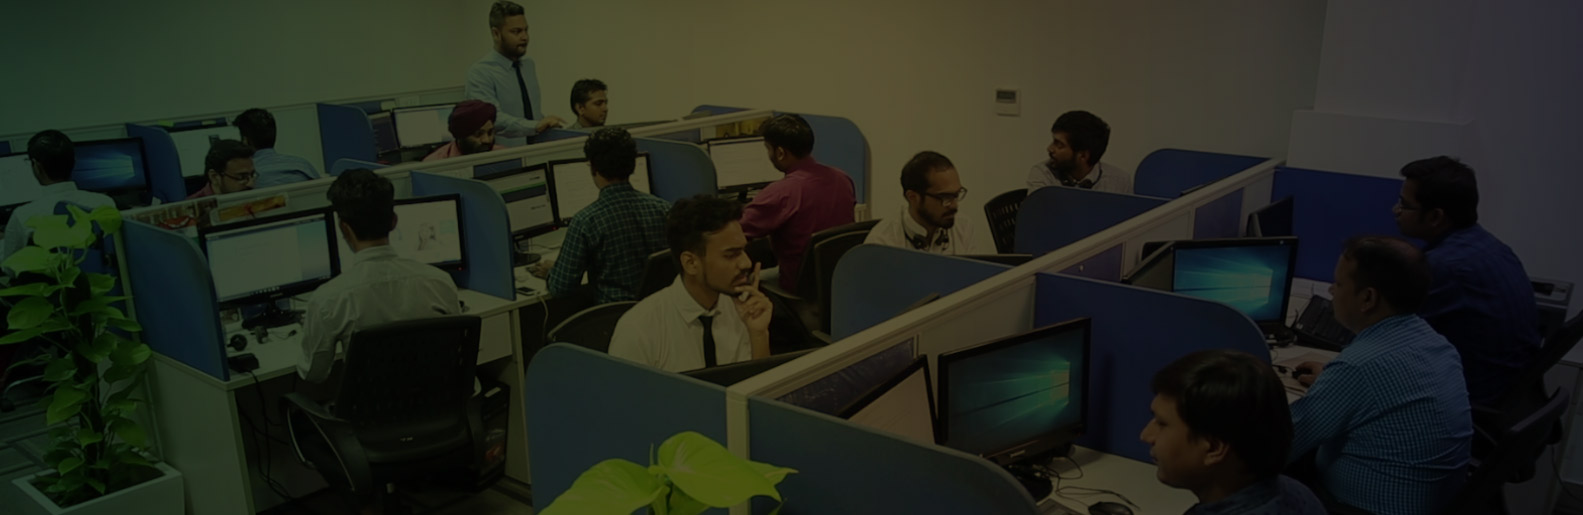 RTDS Working Environment